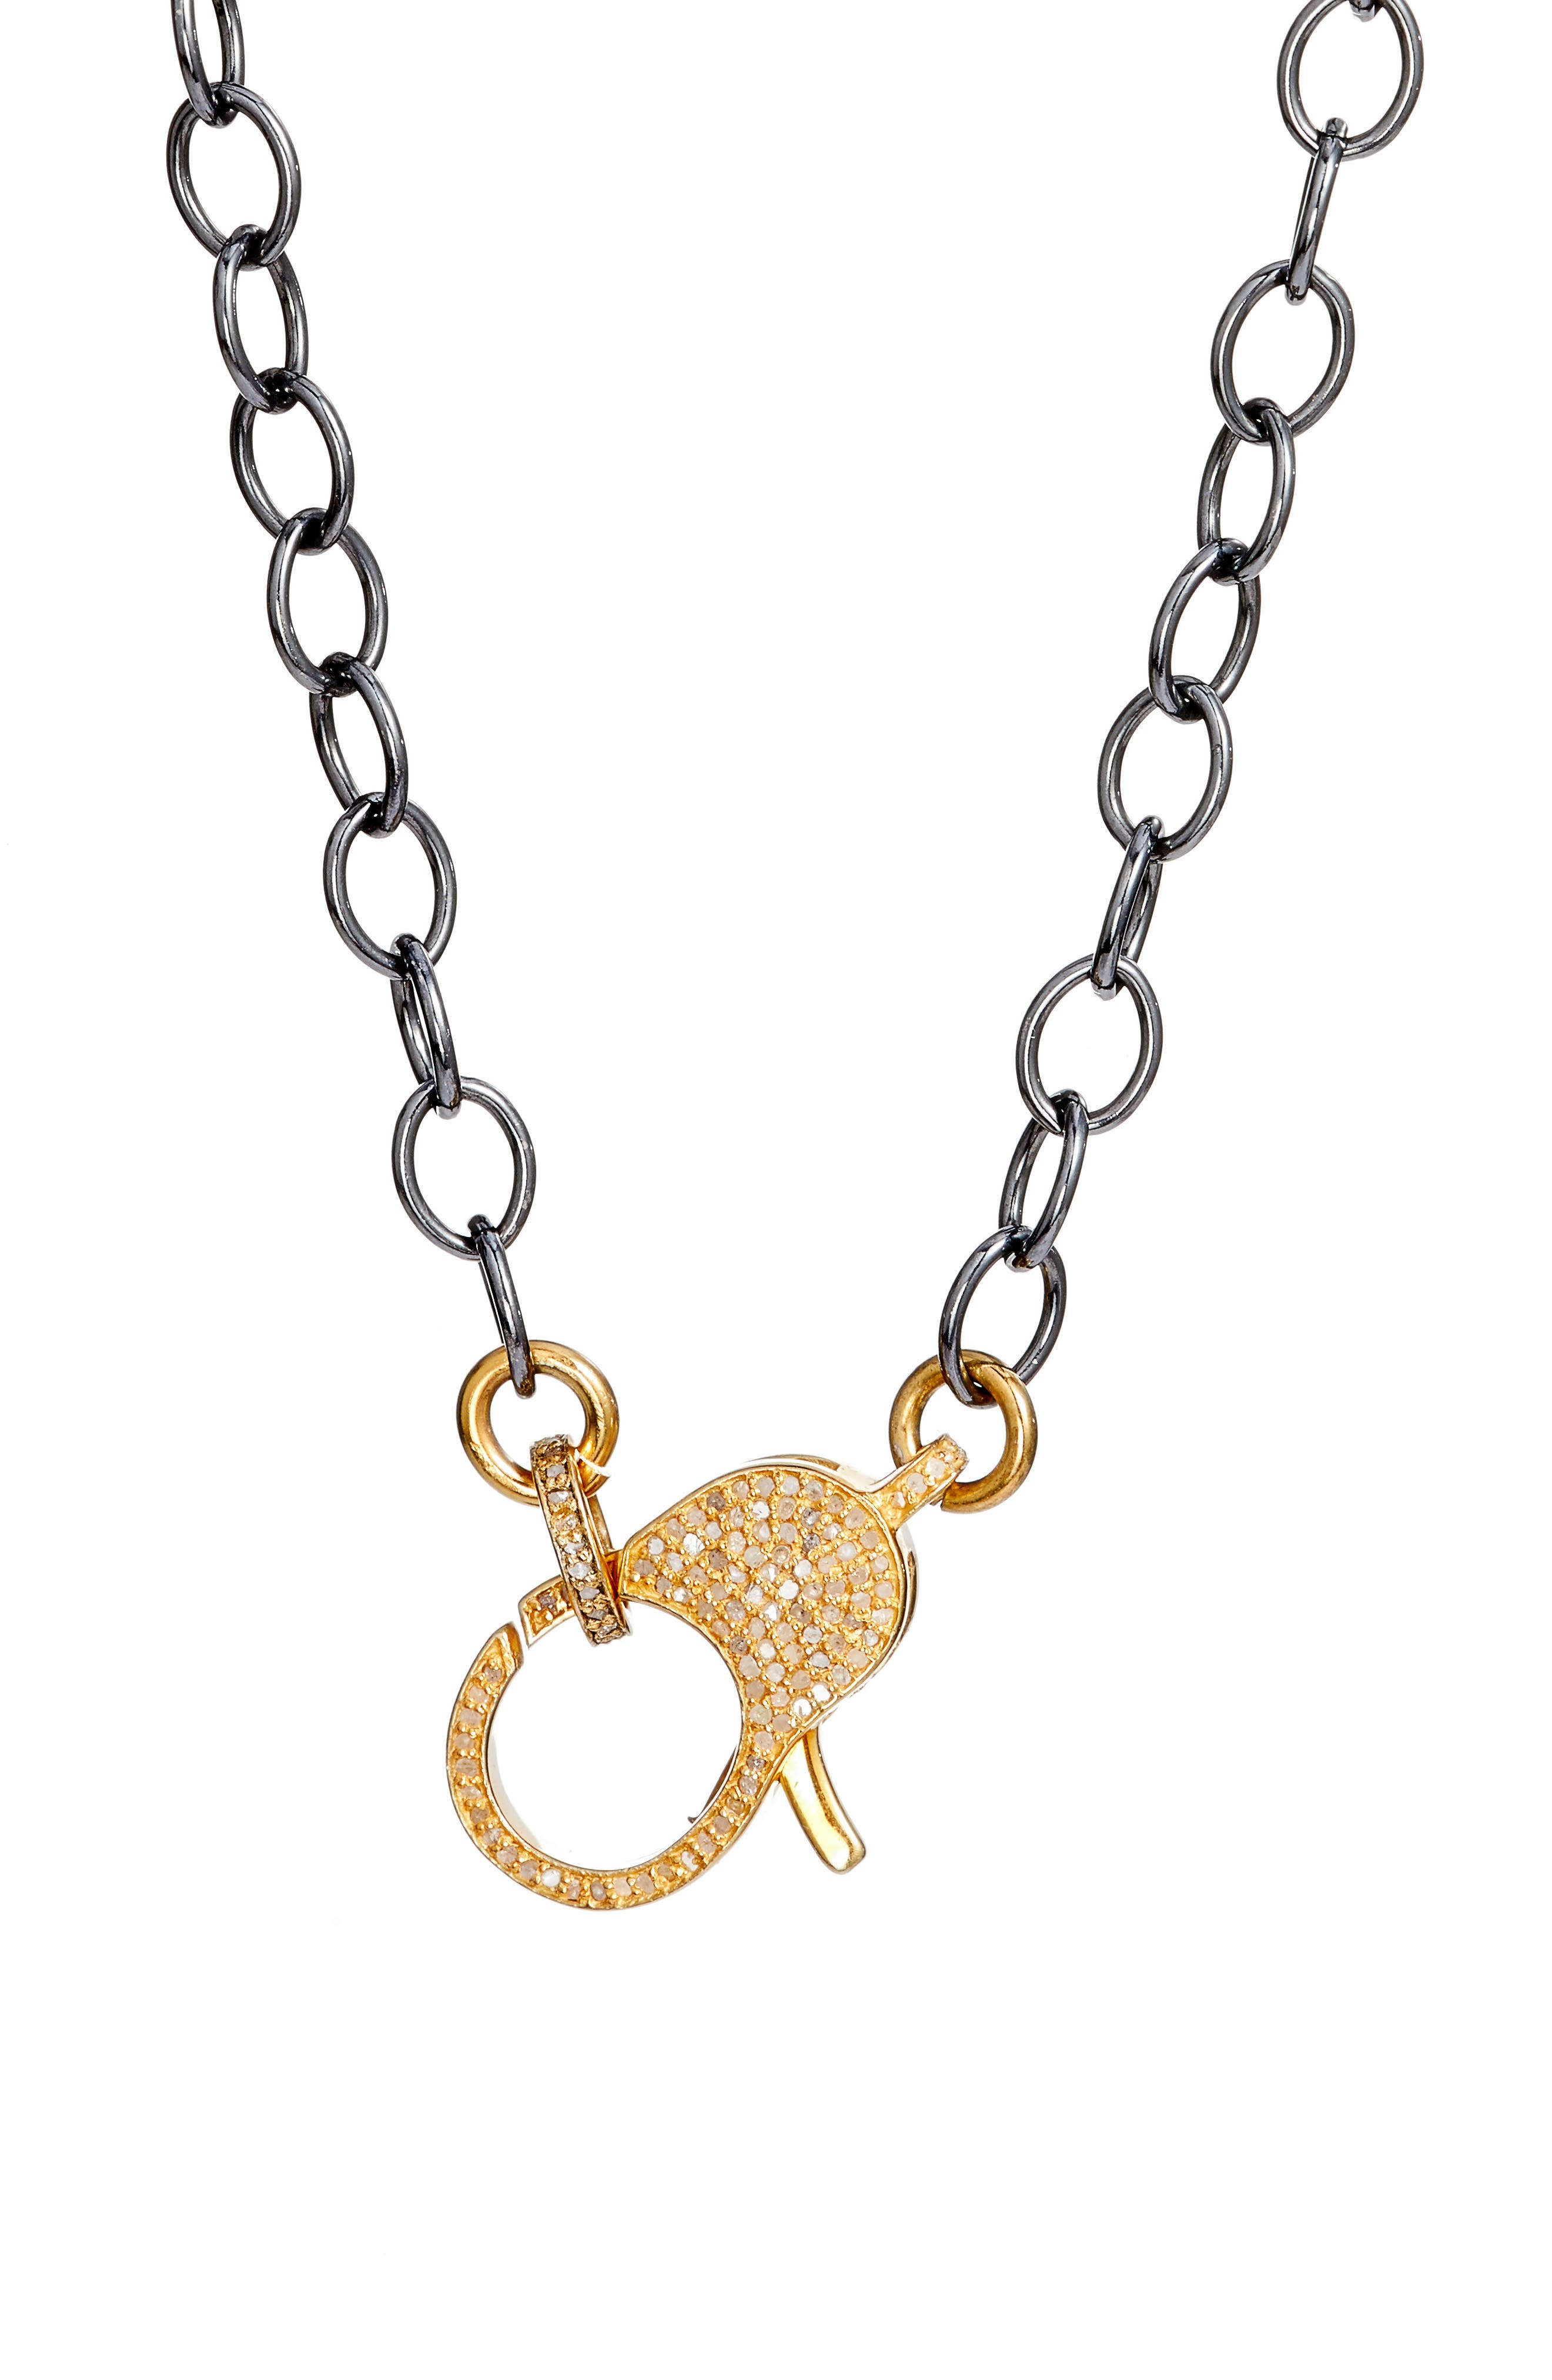 Jane Basch Diamond Pavé Lock Chain Necklace,                             Alternate thumbnail 2, color,                             Gold/ Black